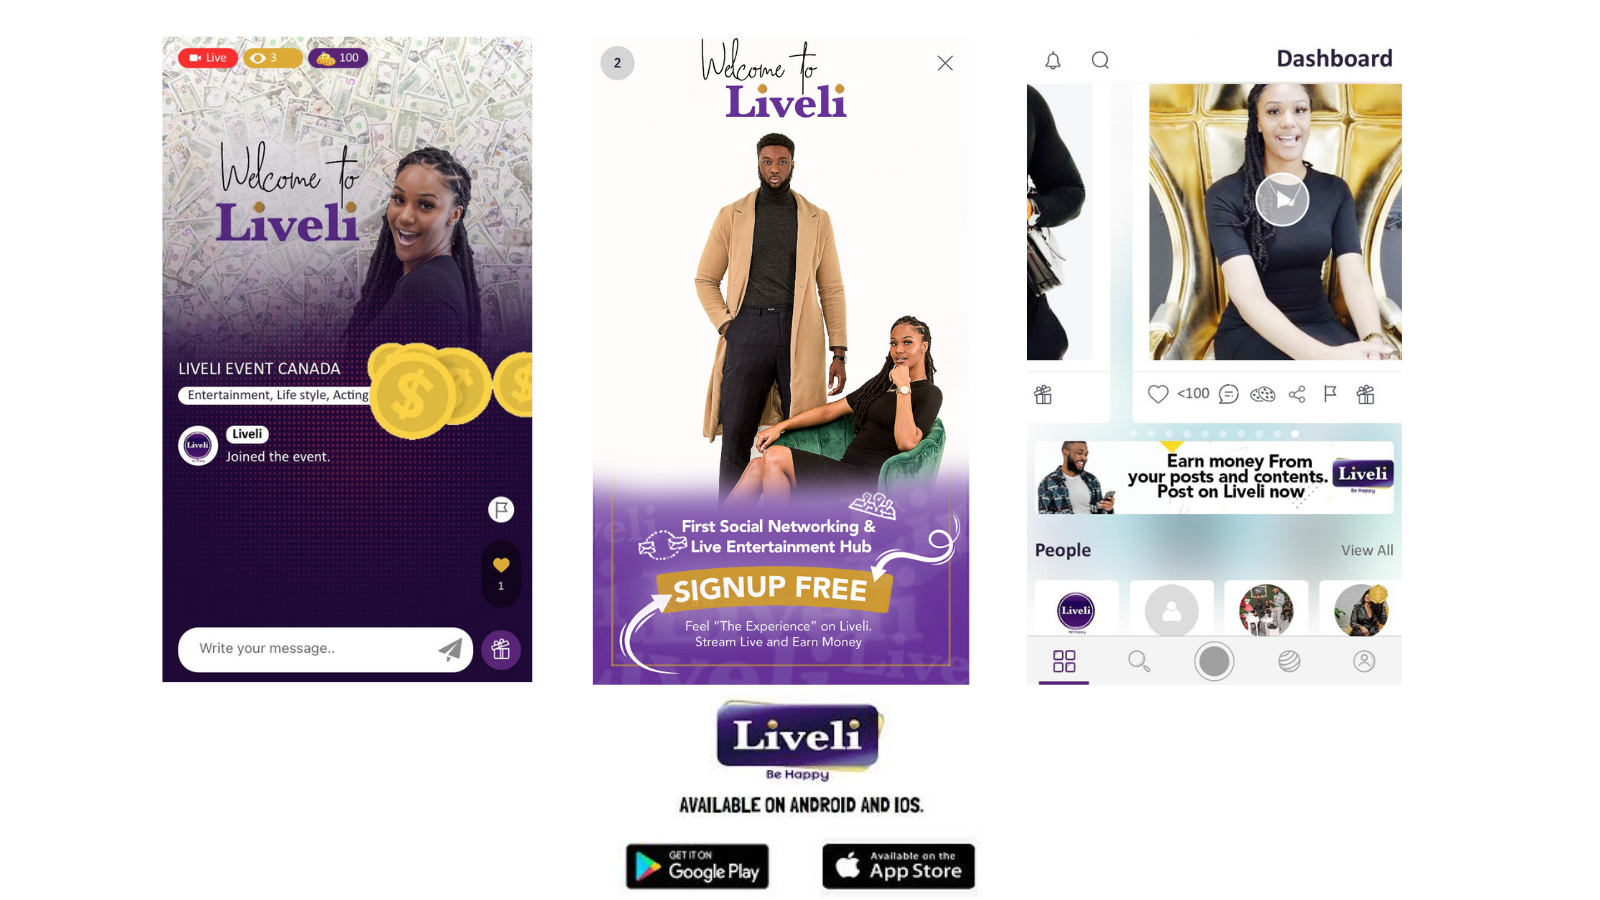 The Liveli App: A Social Networking & Live Entertainment Platform, Where Users Can Earn Money from Posts & Contents, Launches in Africa